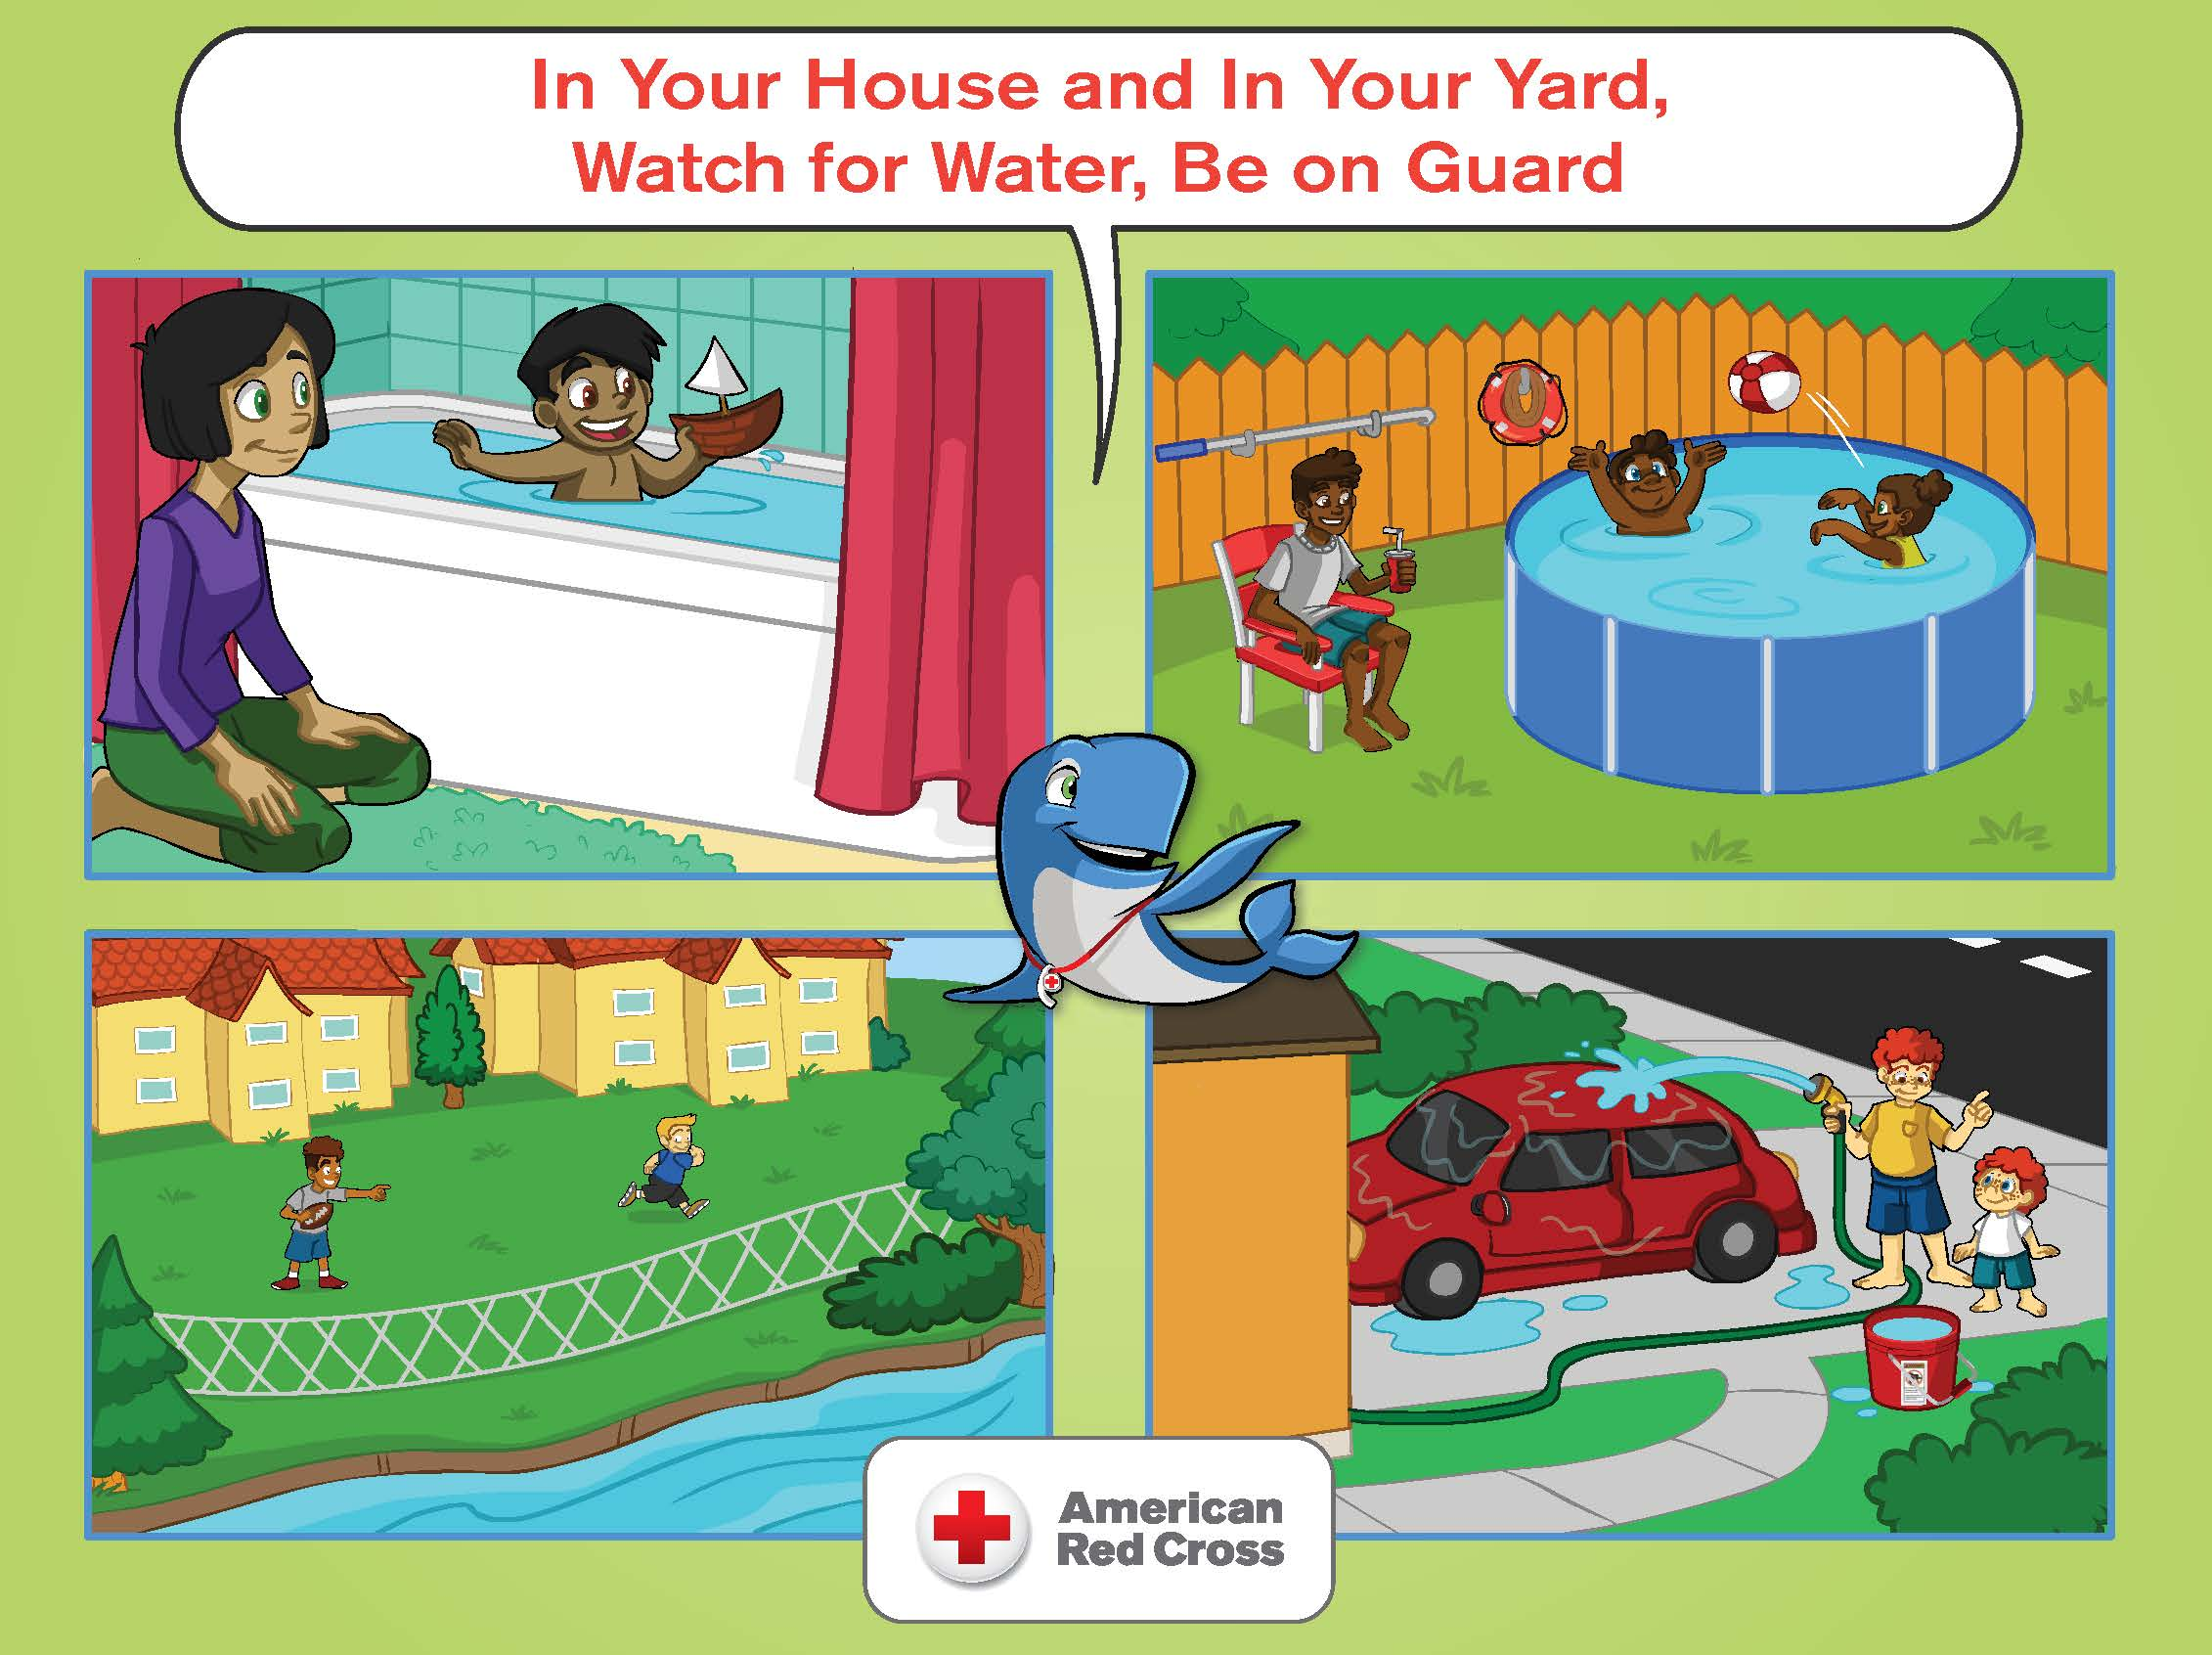 In Your House and In Your Yard, Watch for Water, Be on Guard Poster